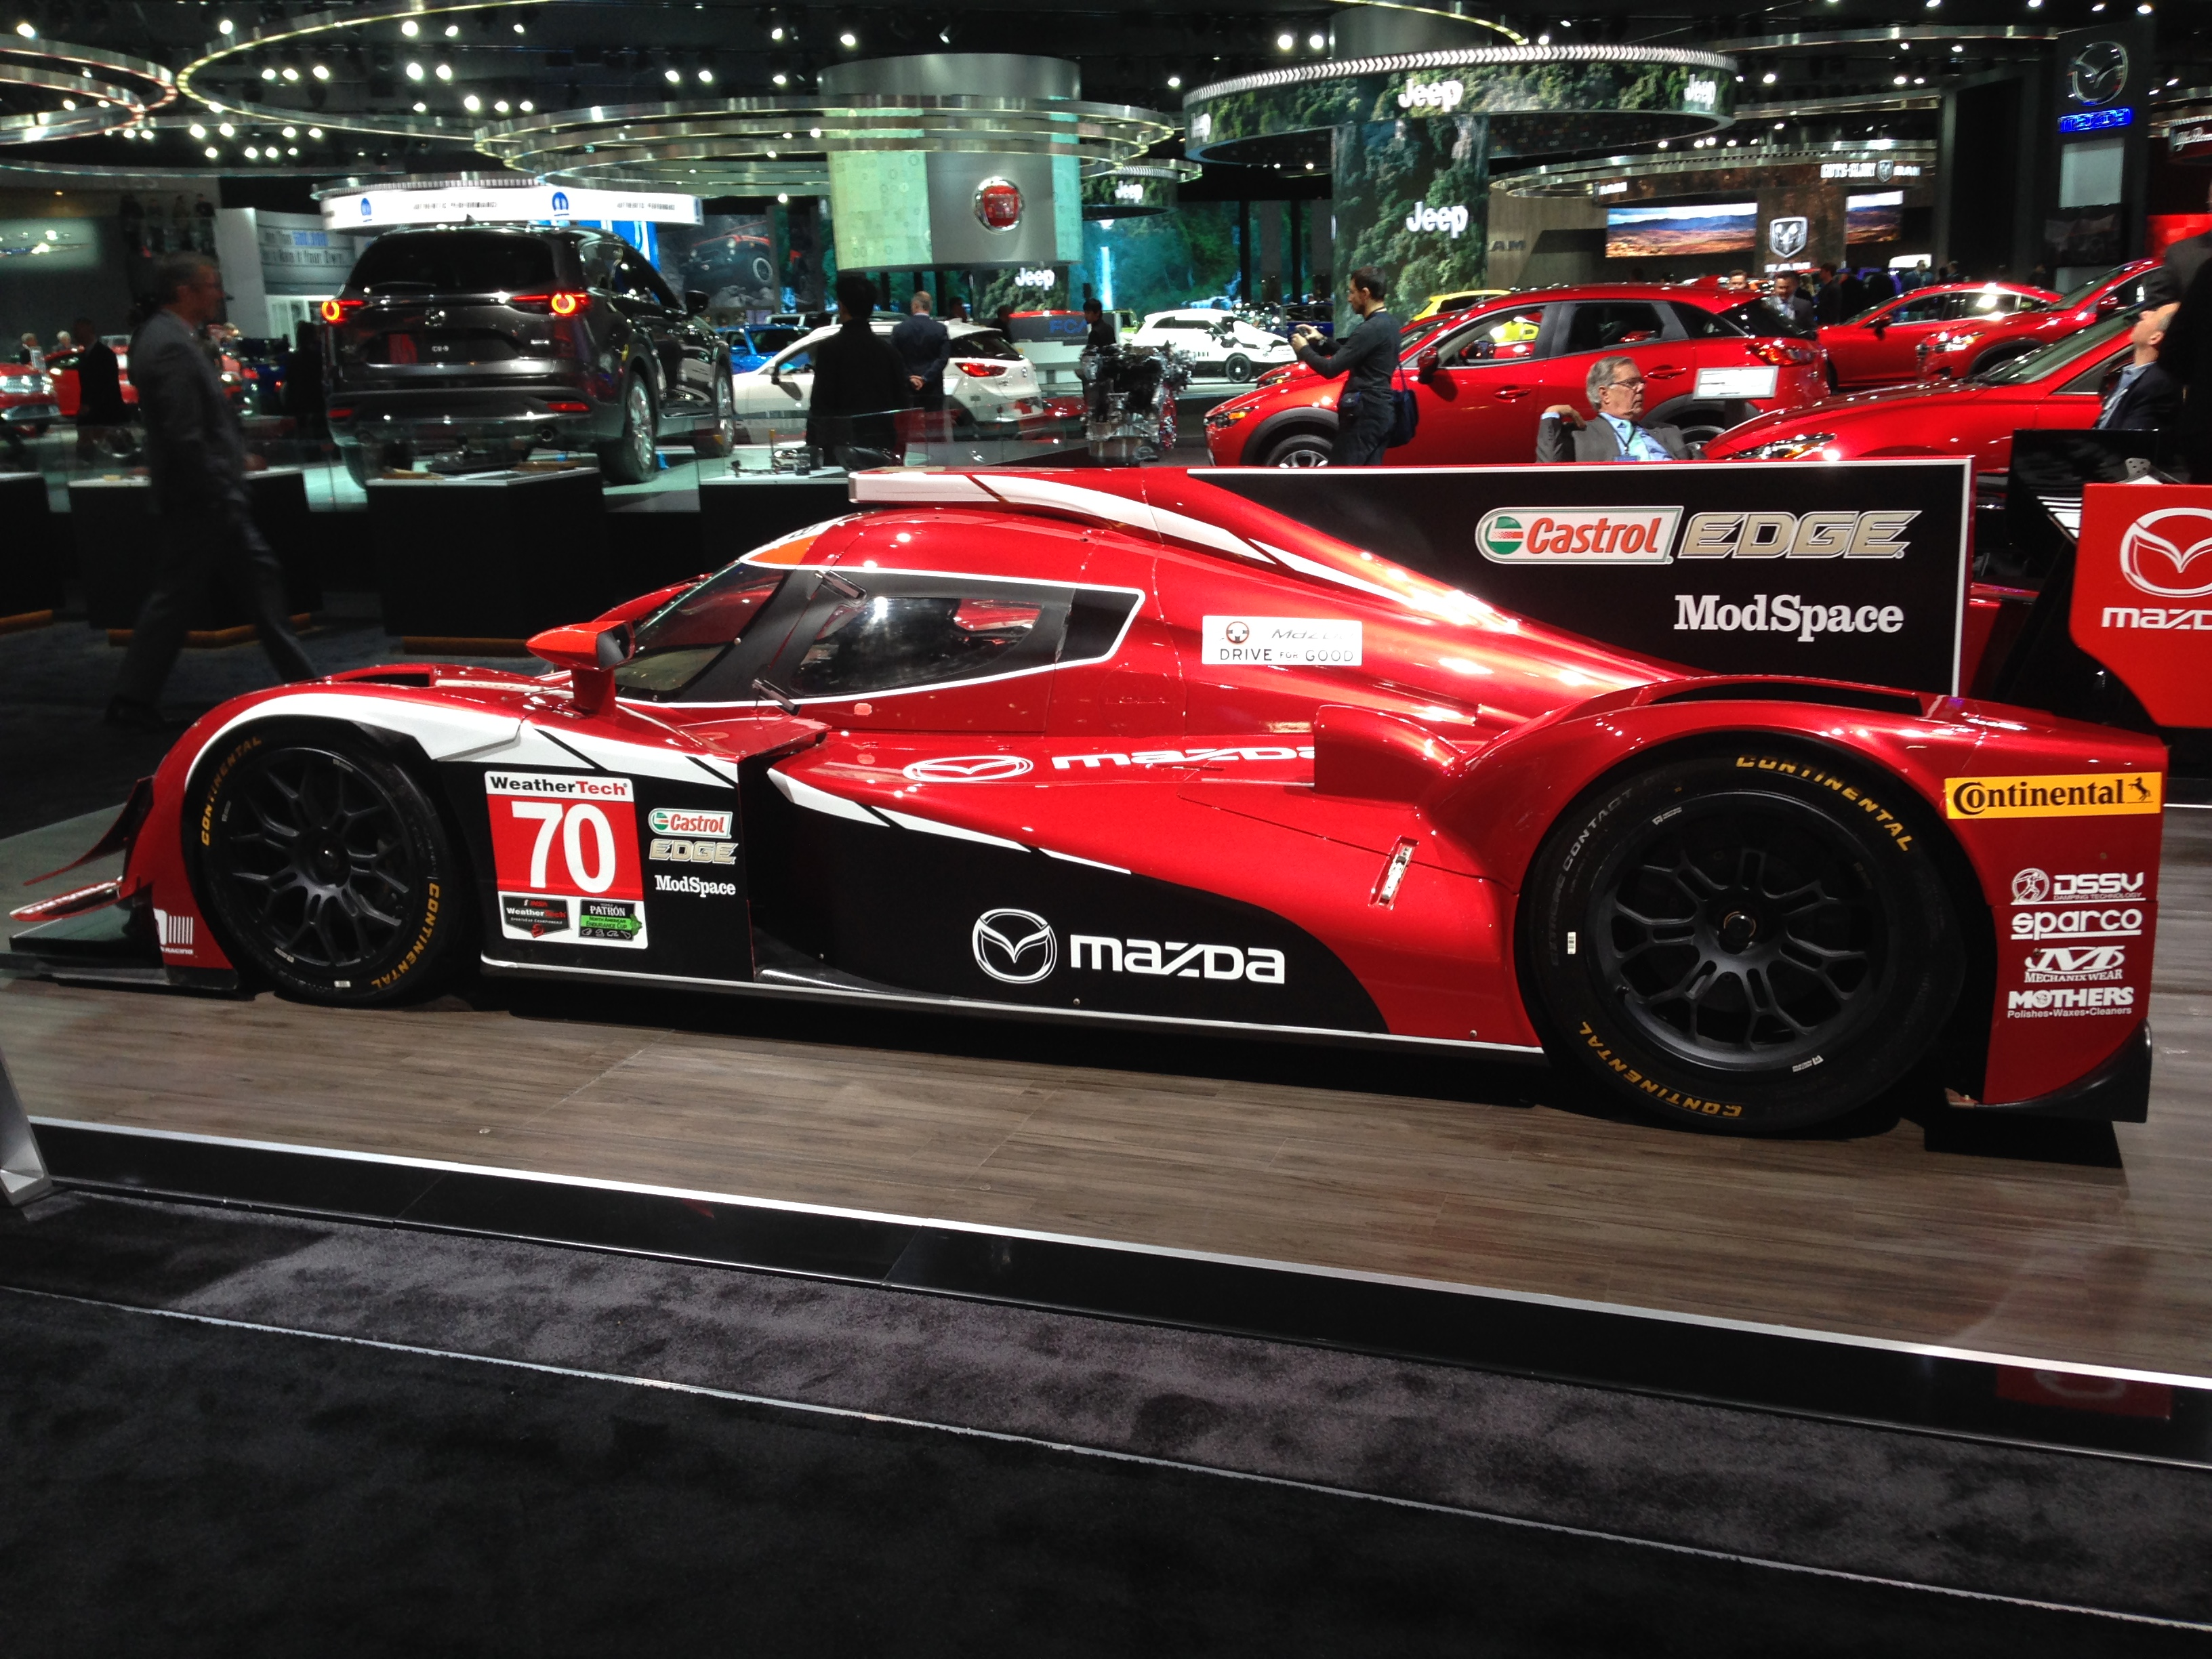 Mazda MZ-2 prototype. 2L, 570hp. Tires Continental Extreme Contact DR